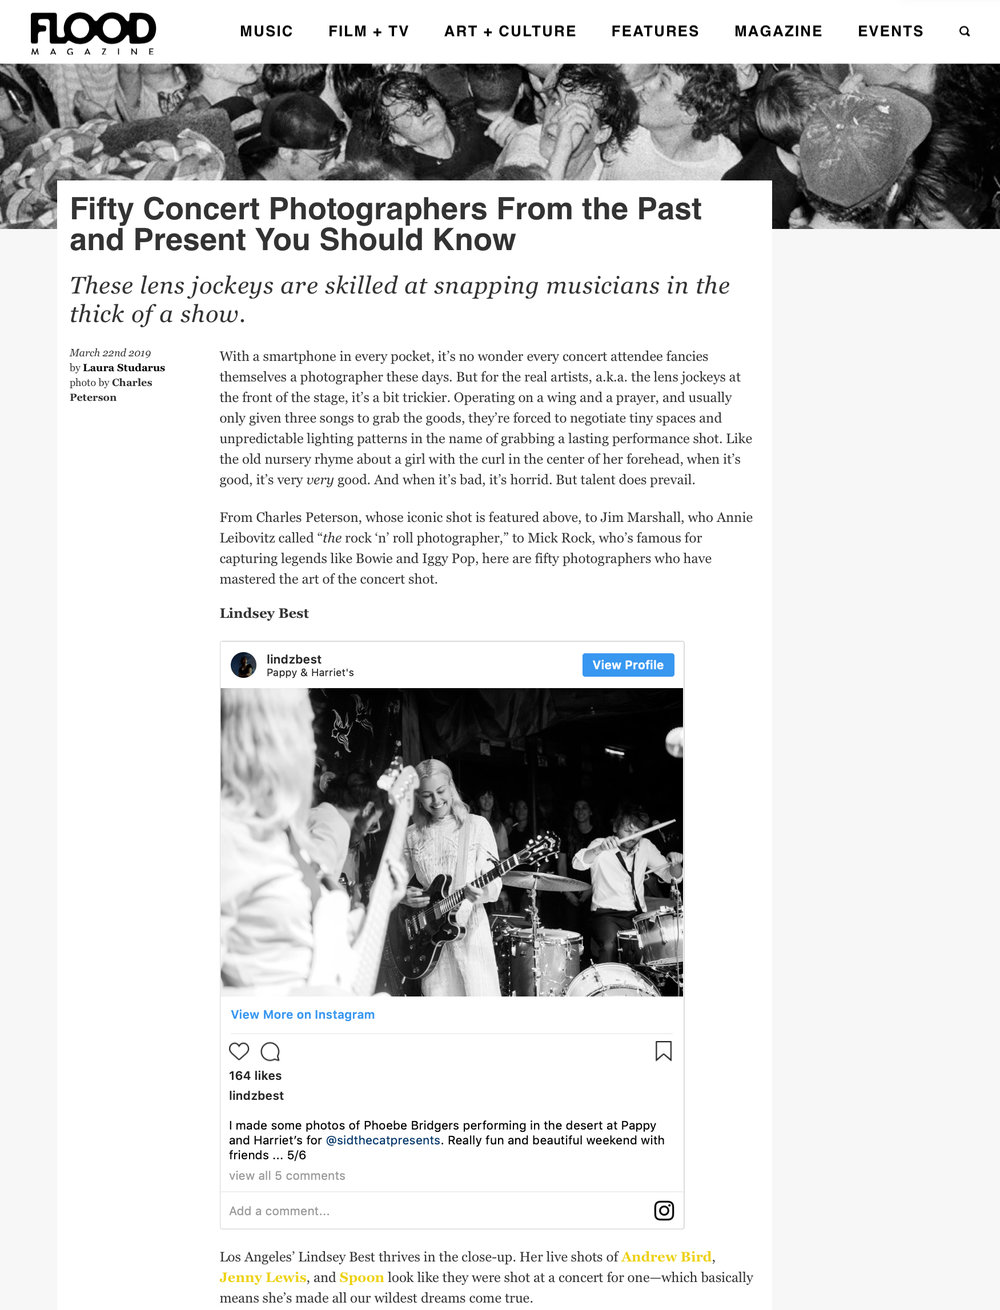 Lindsey Best music photographers Flood Magazine